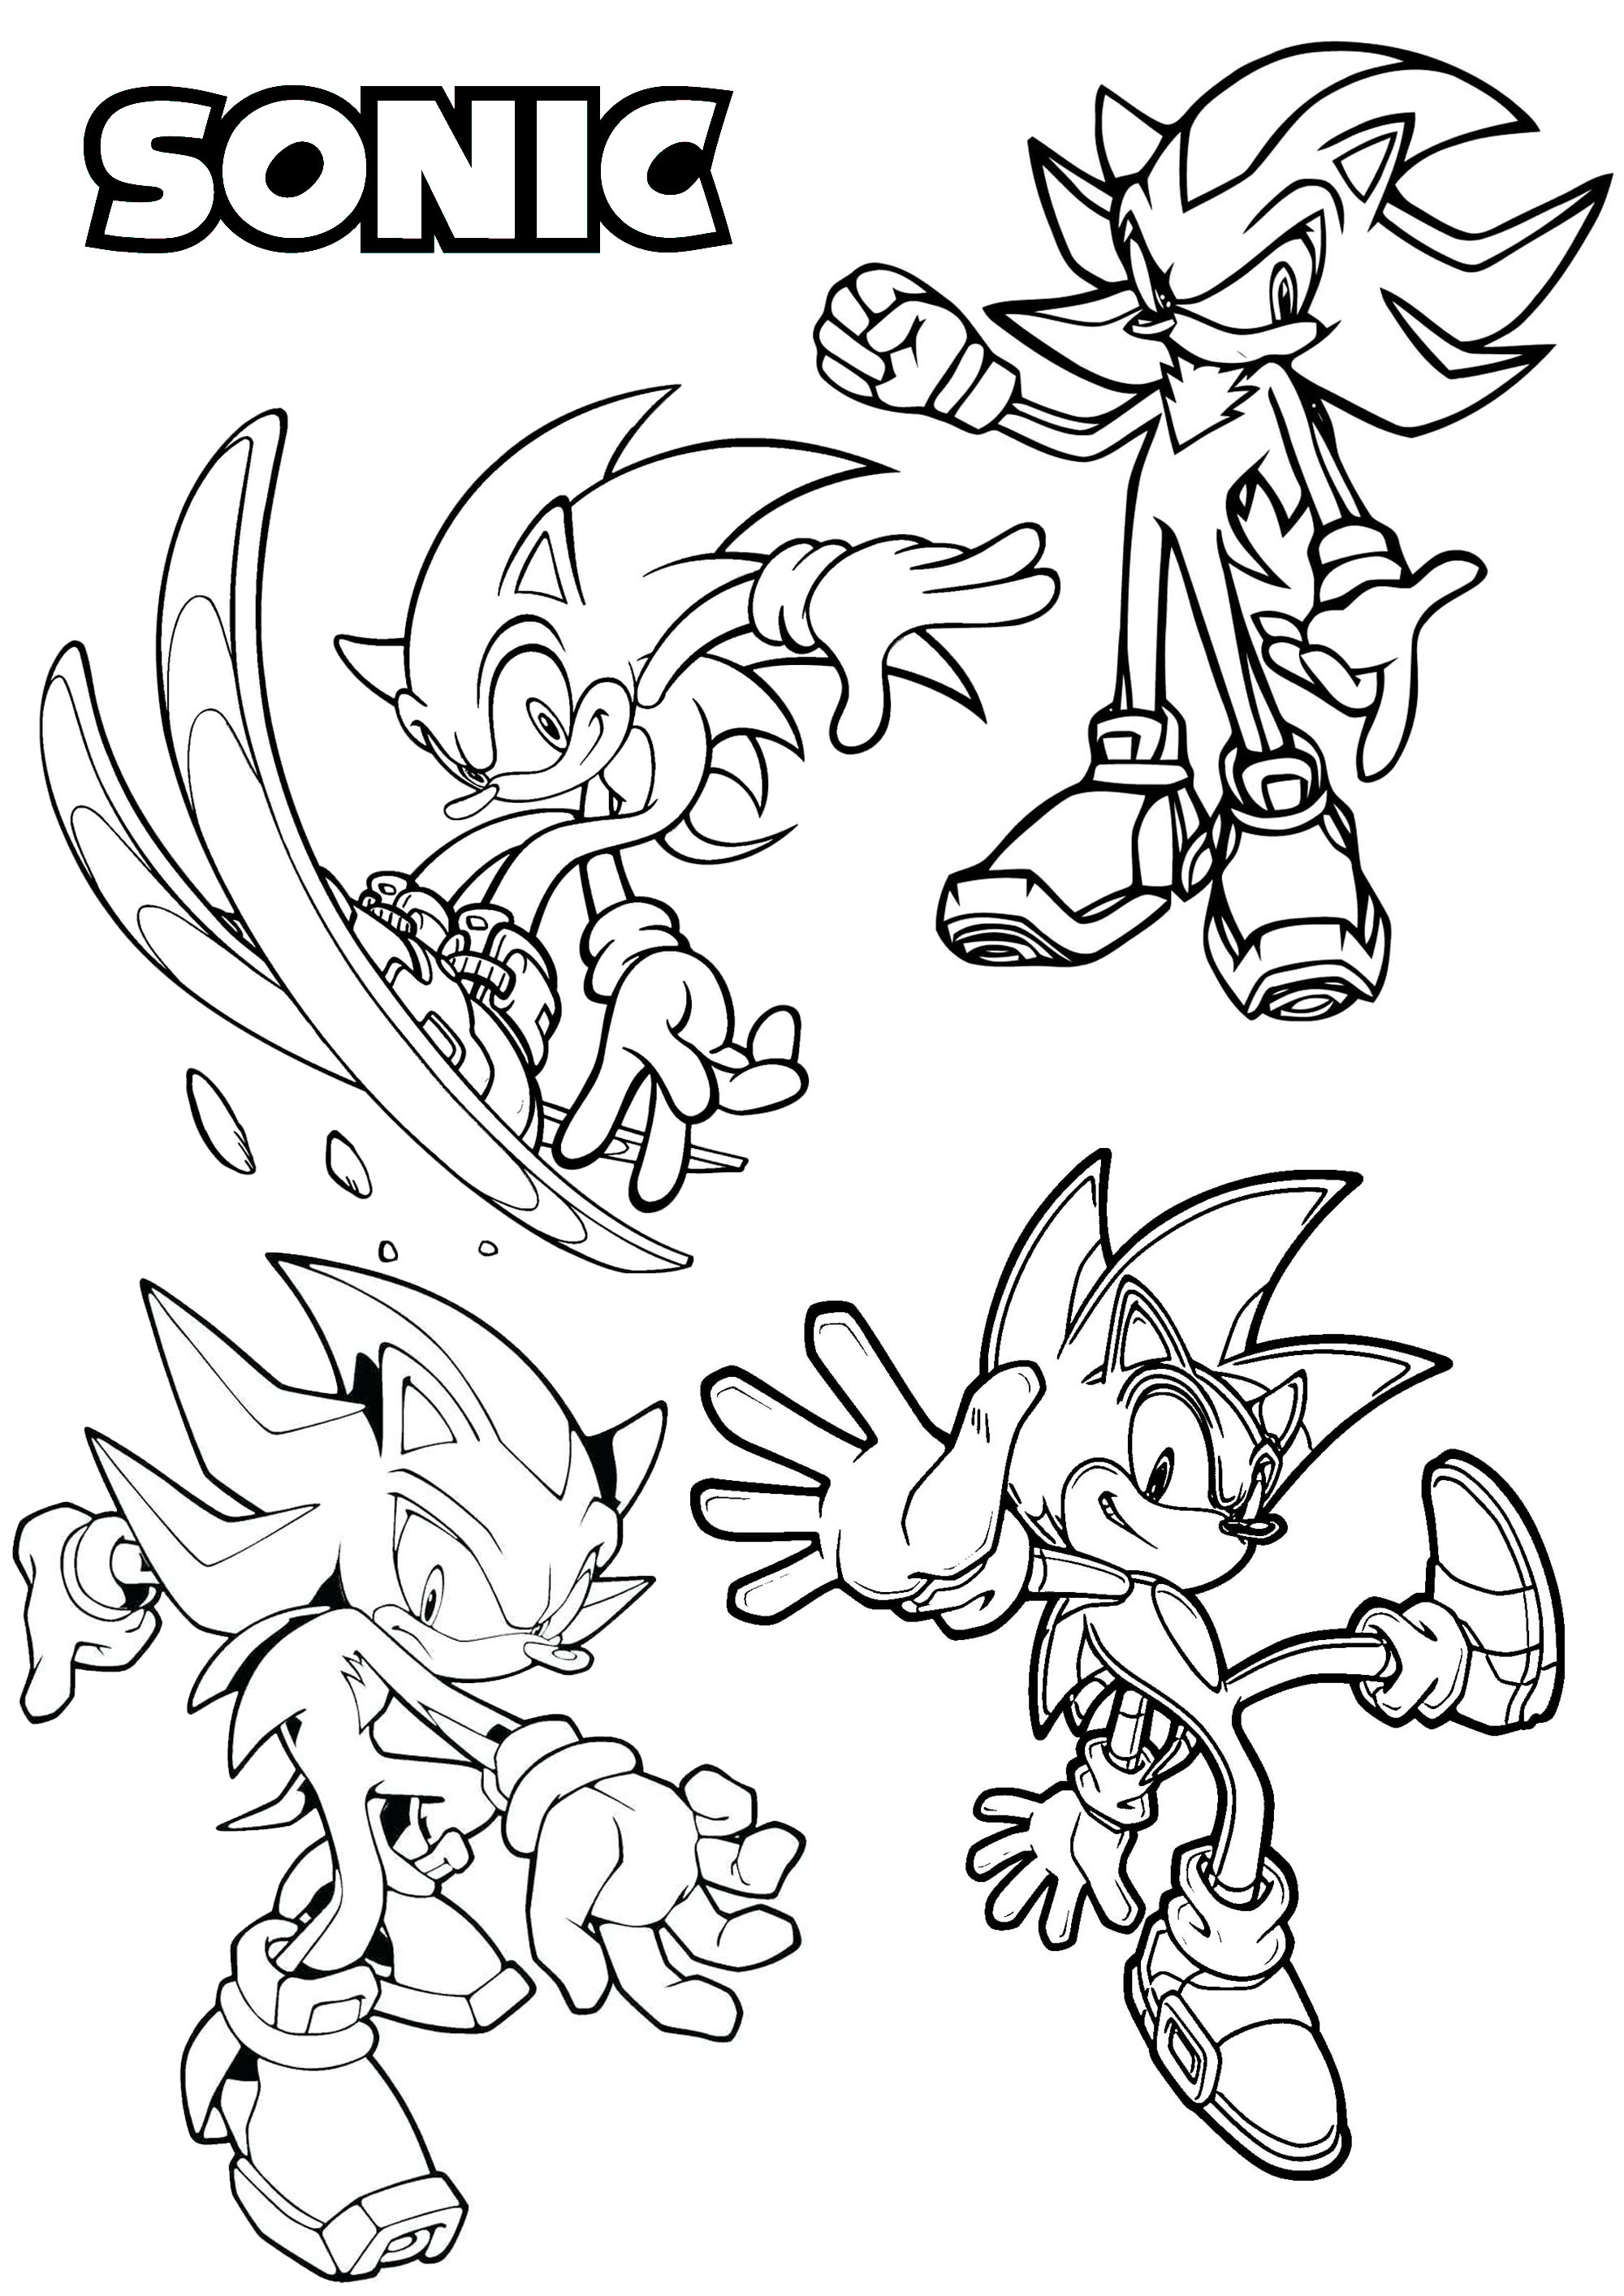 Sonic The Hedgehog Return To Childhood Adult Coloring Pages